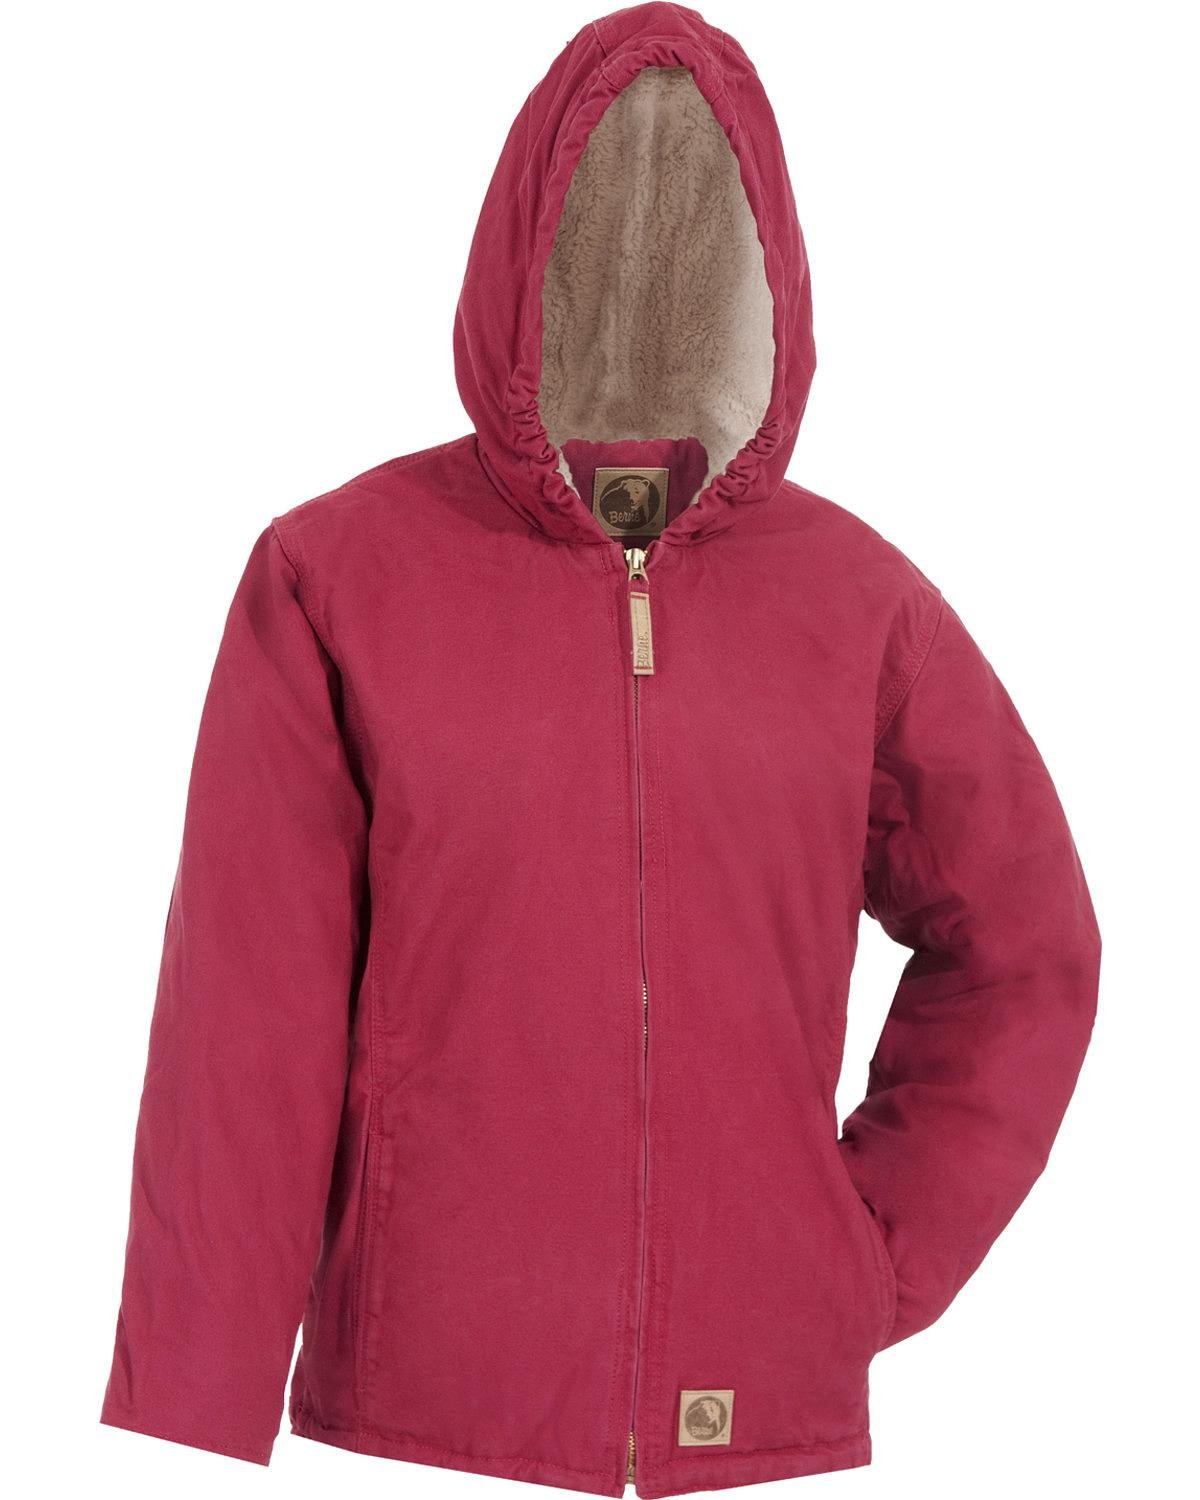 Berne Girls' Washed Sherpa-Lined Hooded Jacket Berry X-Small